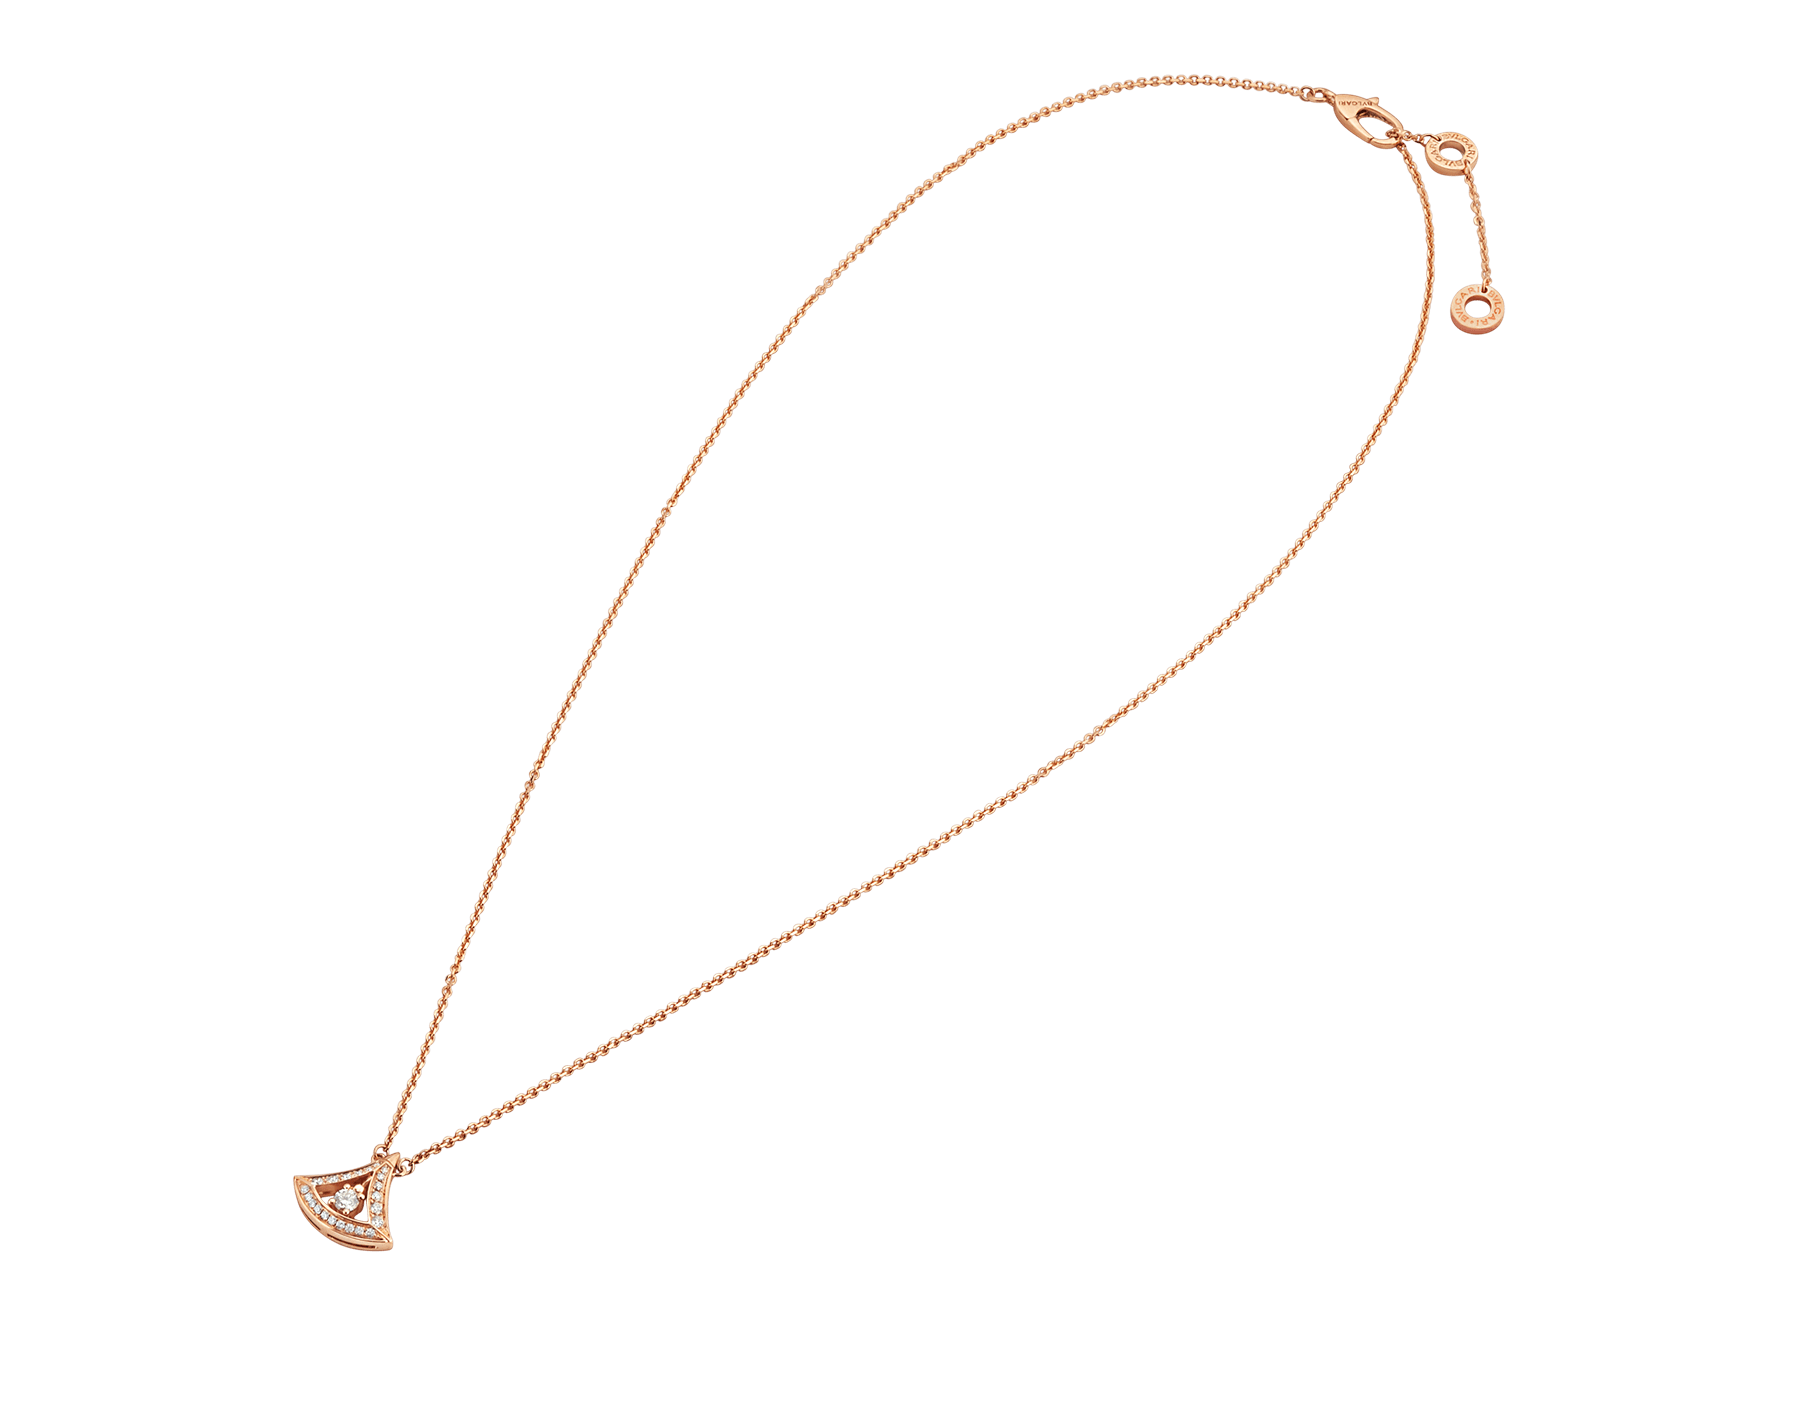 DIVAS' DREAM 18 kt rose gold openwork necklace with 18 kt rose gold pendant set with a central diamond and pavé diamonds. 354363 image 2